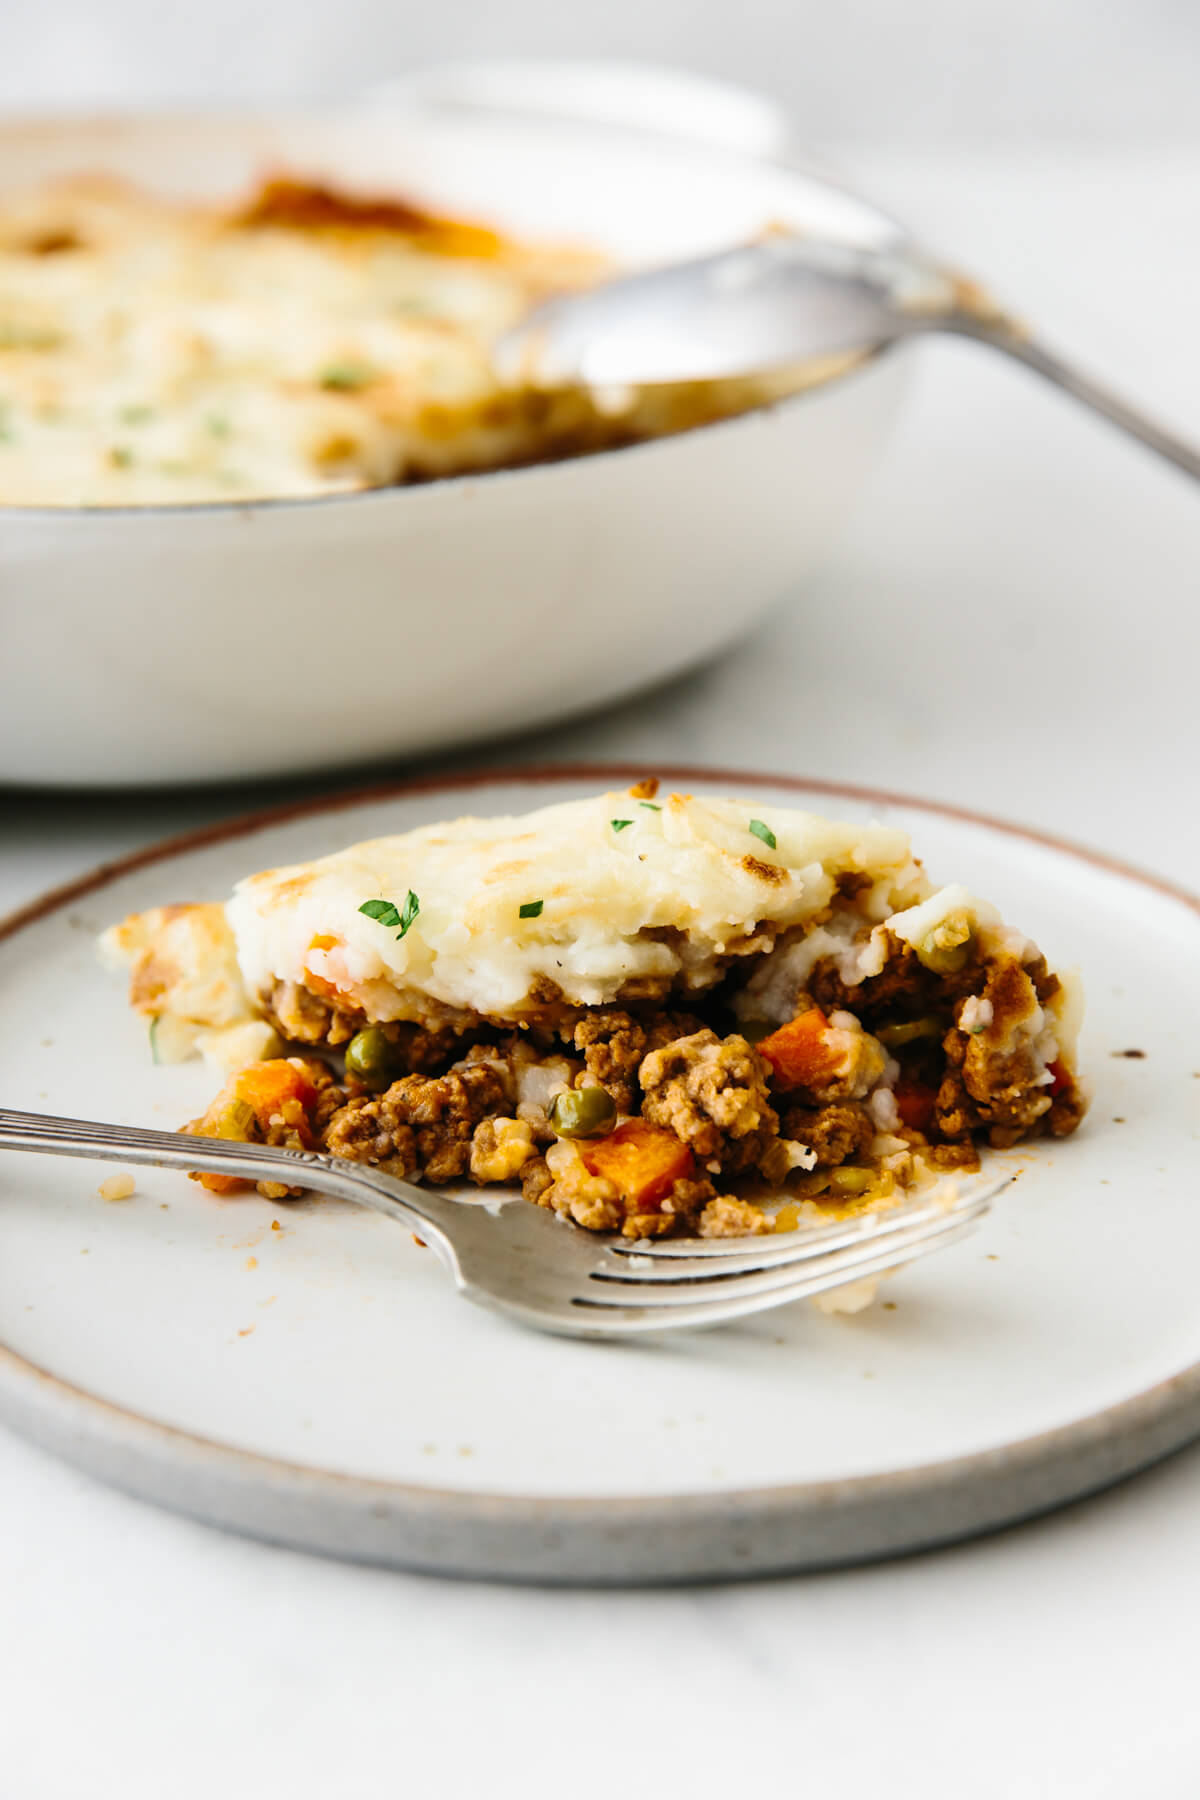 An individual serving of Shepherd's pie on a plate.